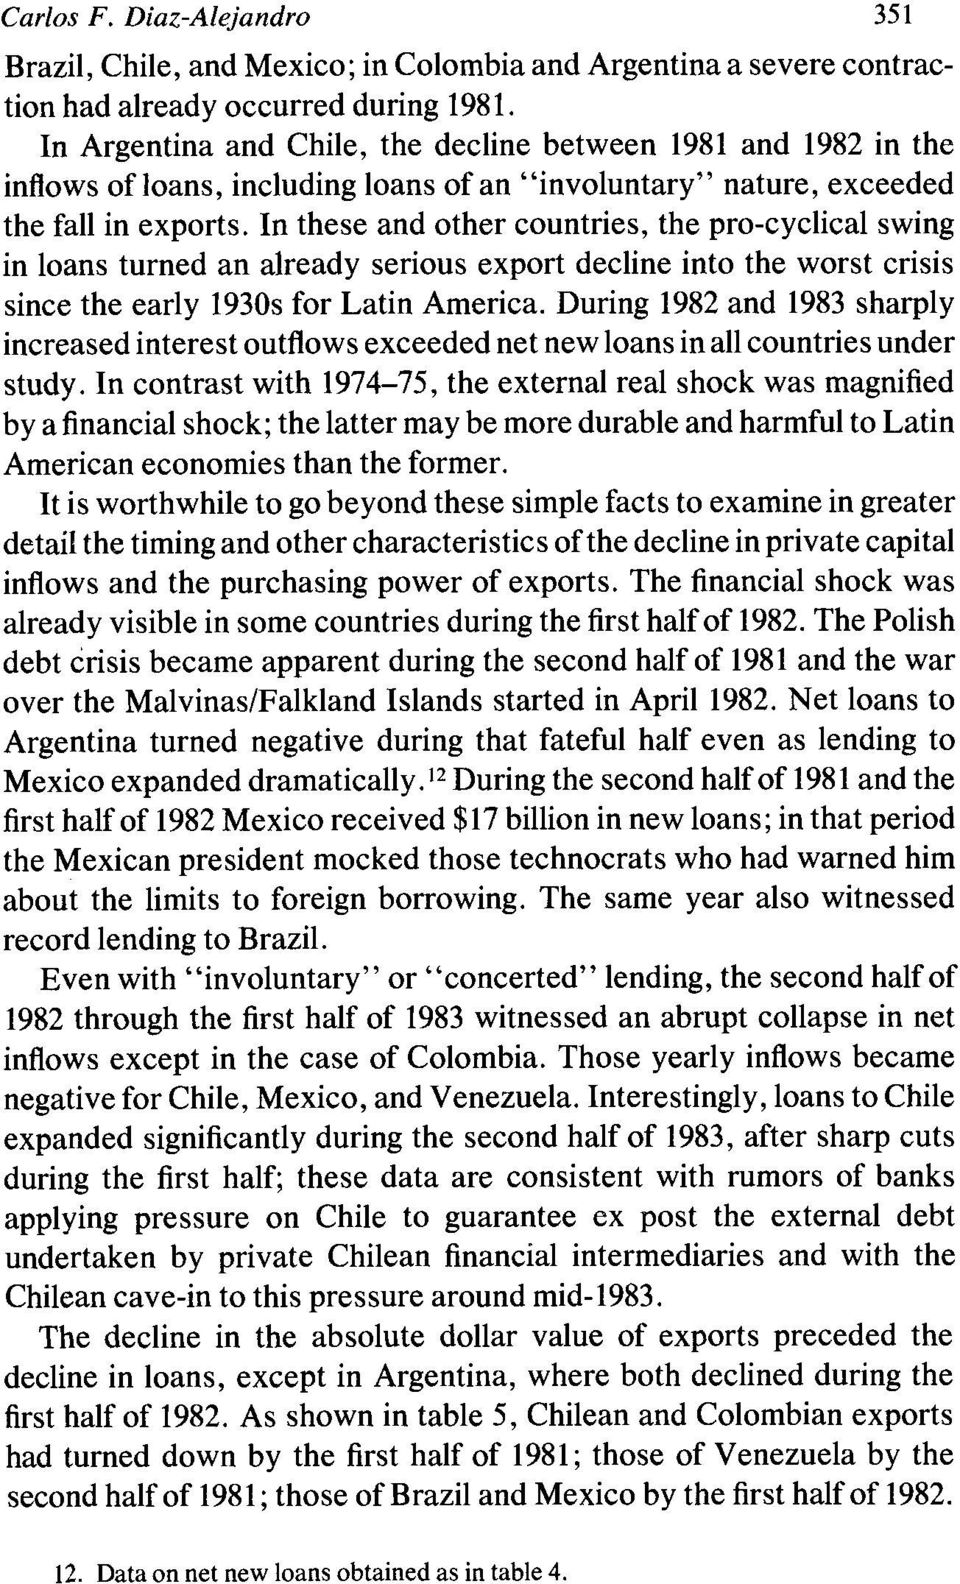 In these and other countries, the pro-cyclical swing in loans turned an already serious export decline into the worst crisis since the early 1930s for Latin America.